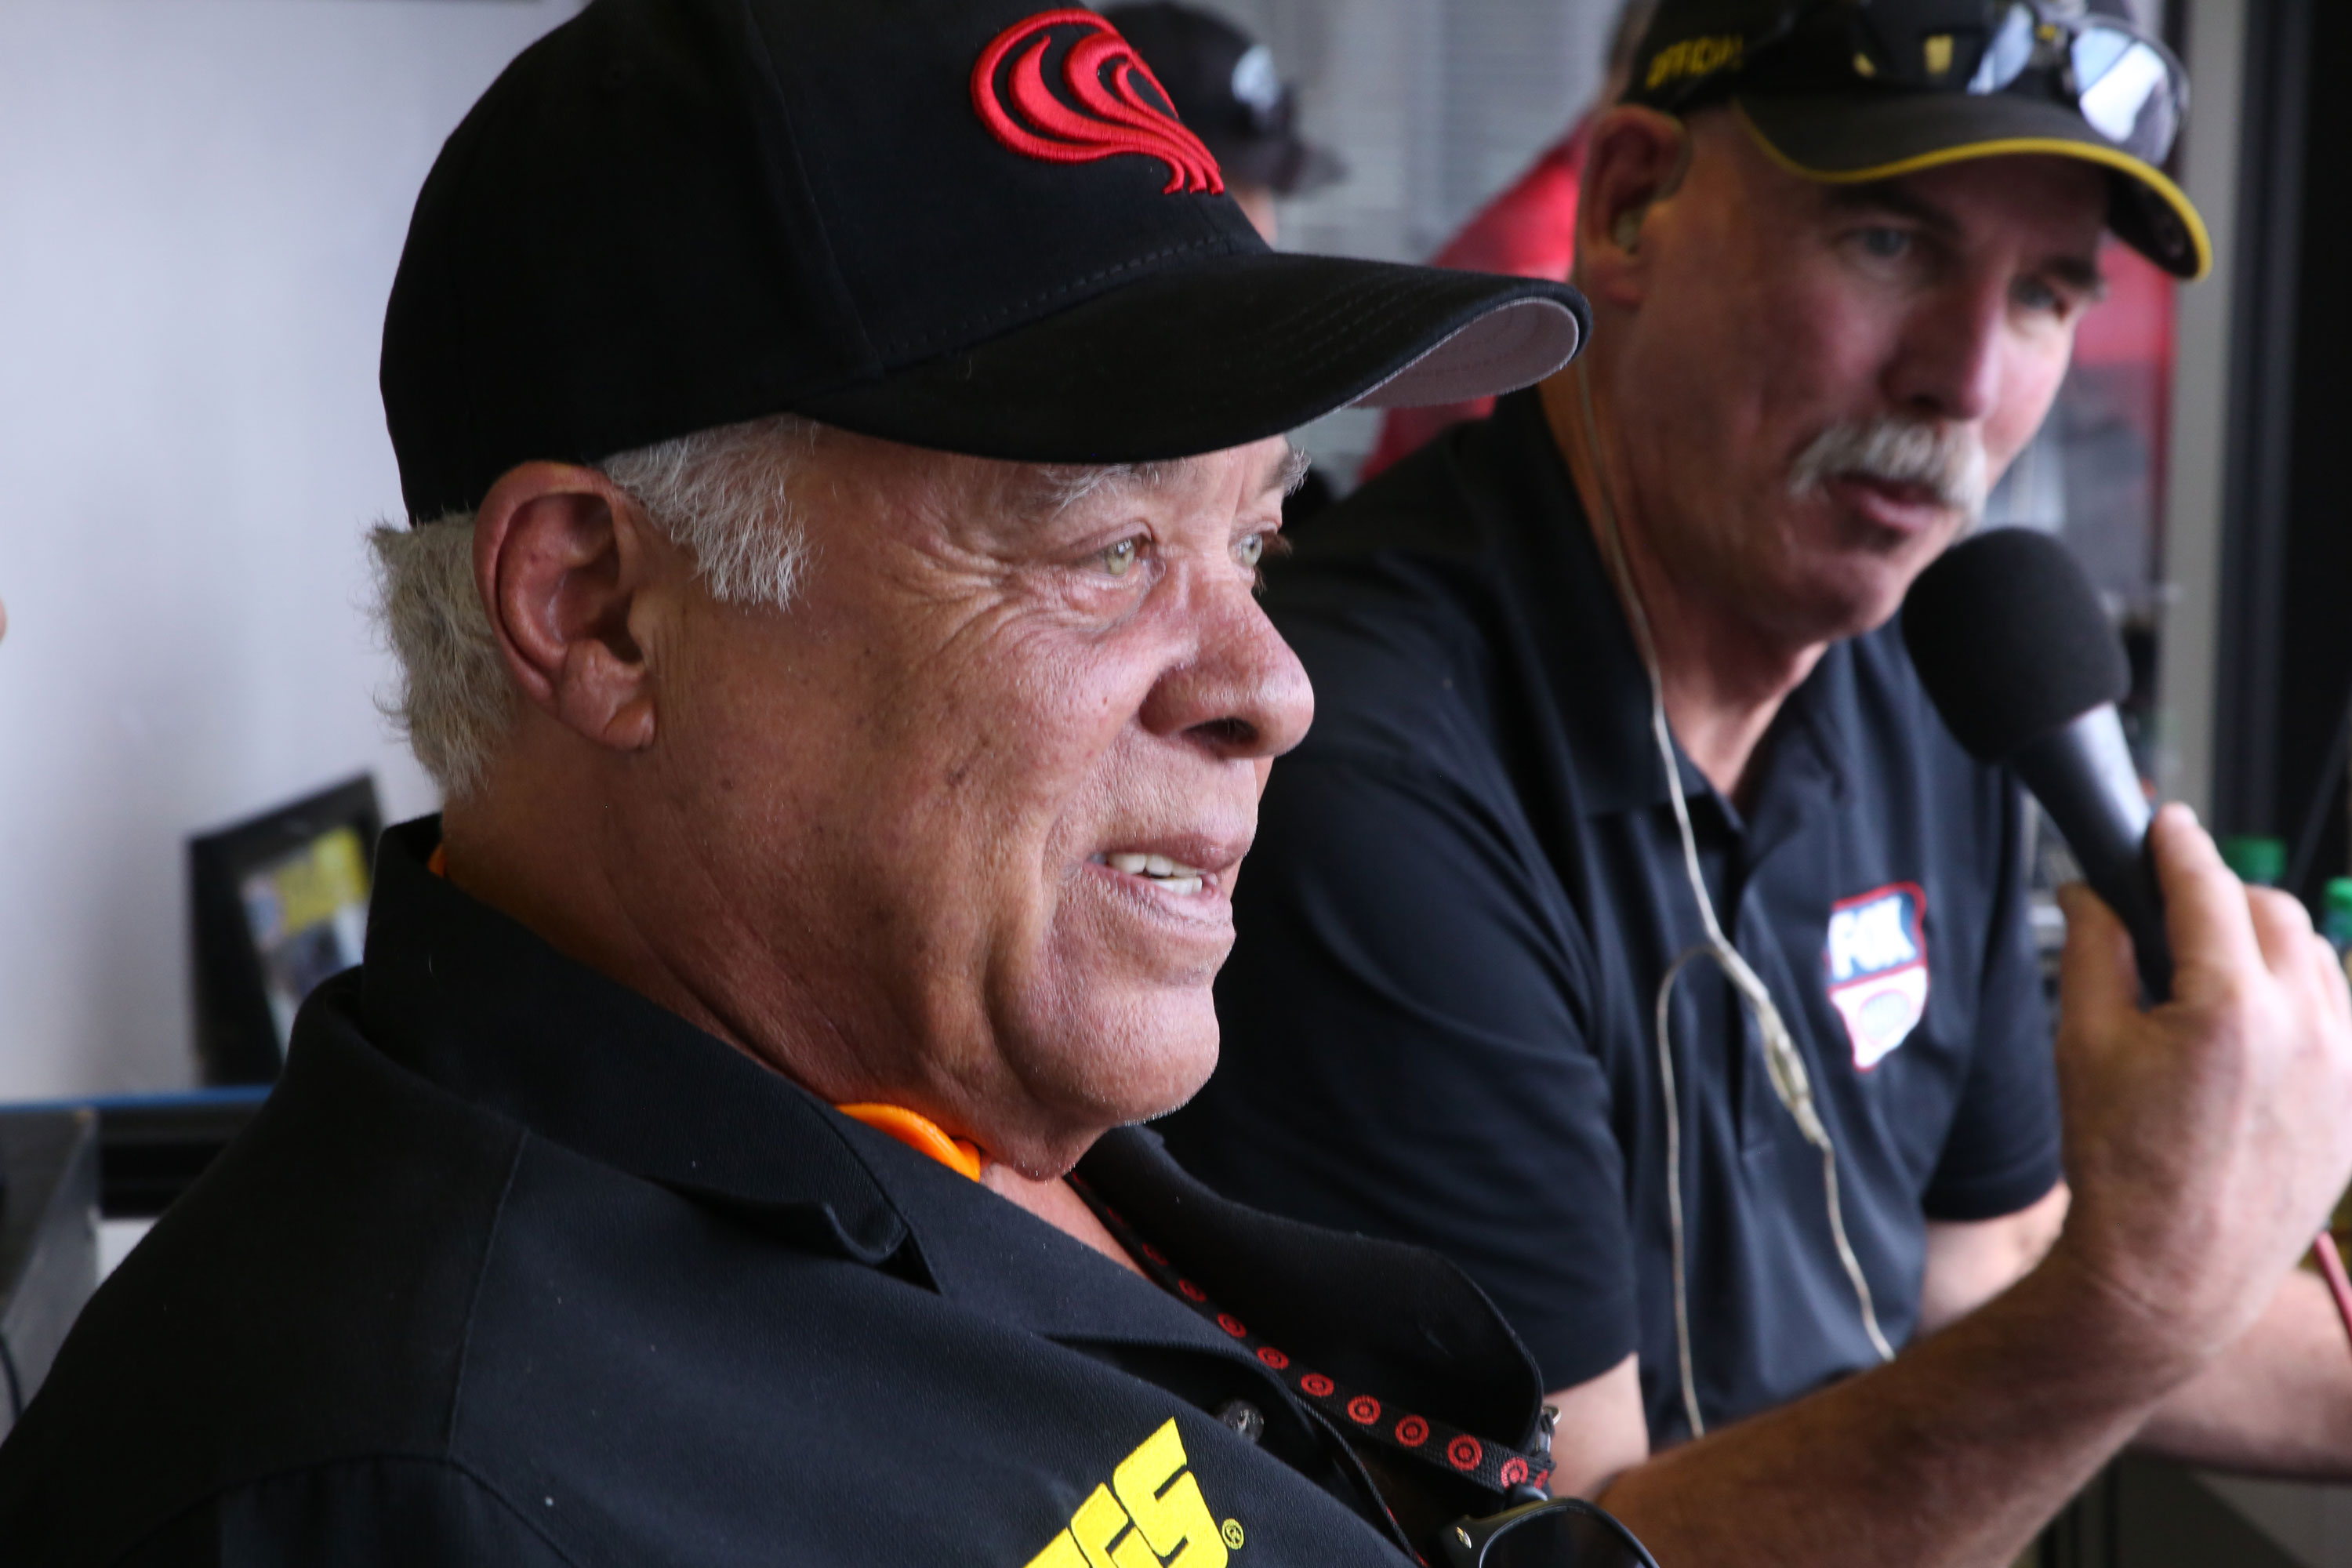 It's been almost 20 years since Prudhomme retired as a team owner, but he can still read a run from burnout to 'chutes, and tell you exactly what went wrong, and when.